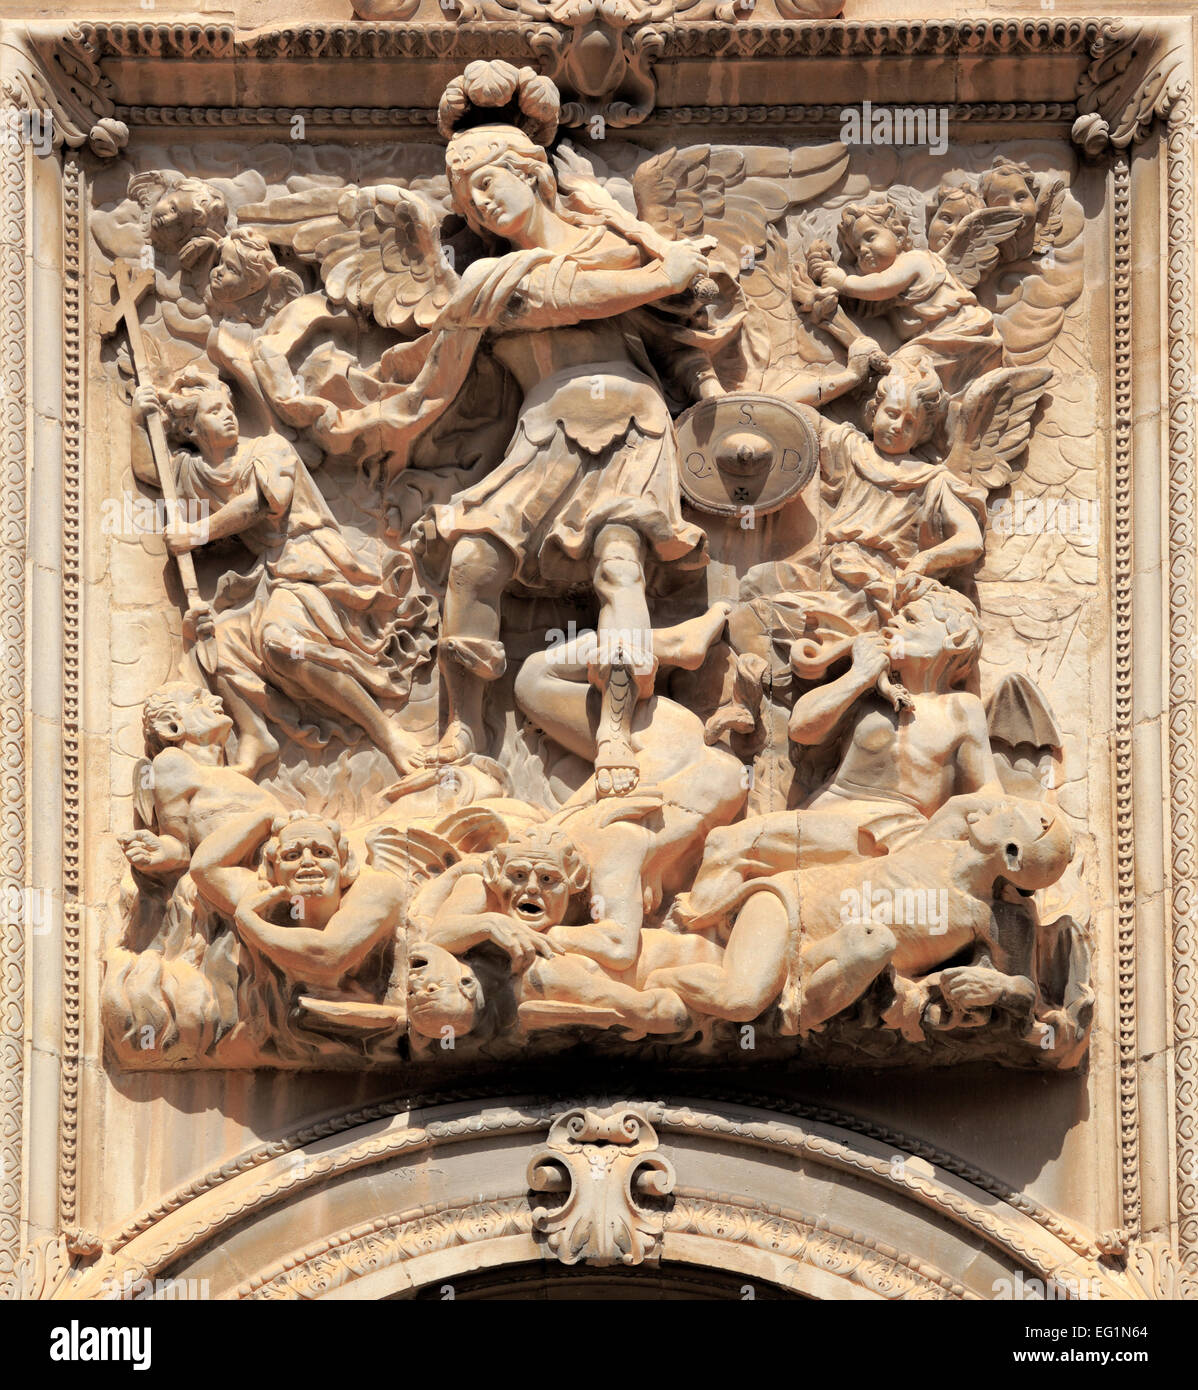 Archangel Michael, Sculptural relief, Cathedral, Jaen, Andalusia, Spain - Stock Image